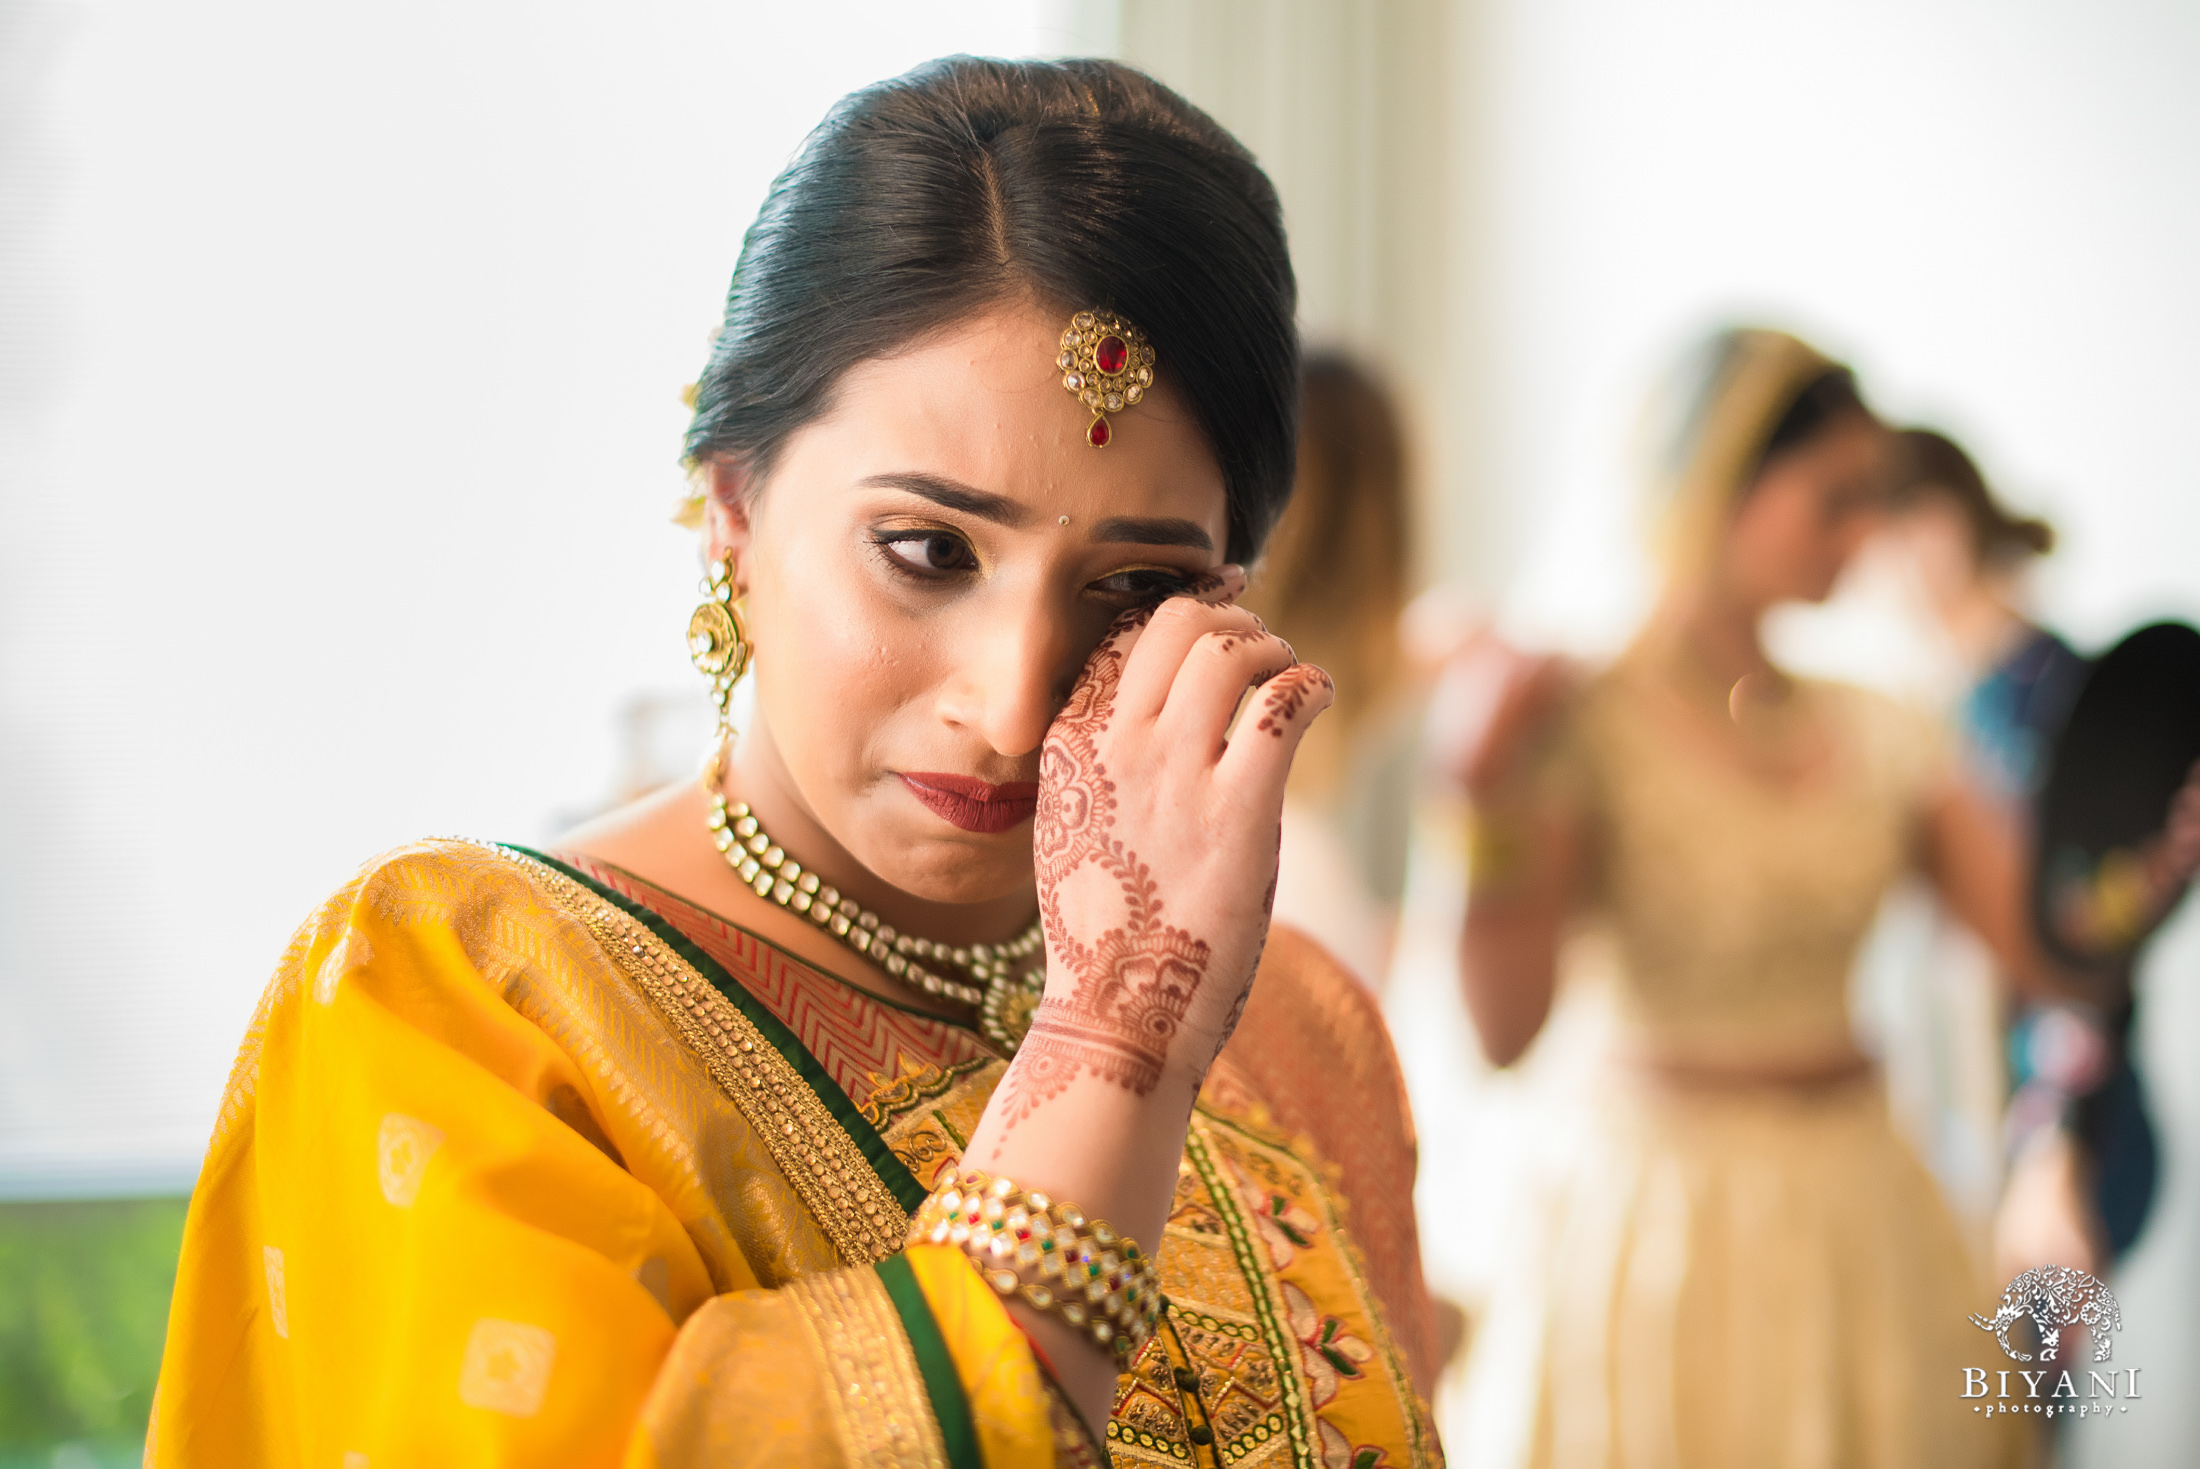 Sister of the bride crying while watching her sister get ready for her ceremony